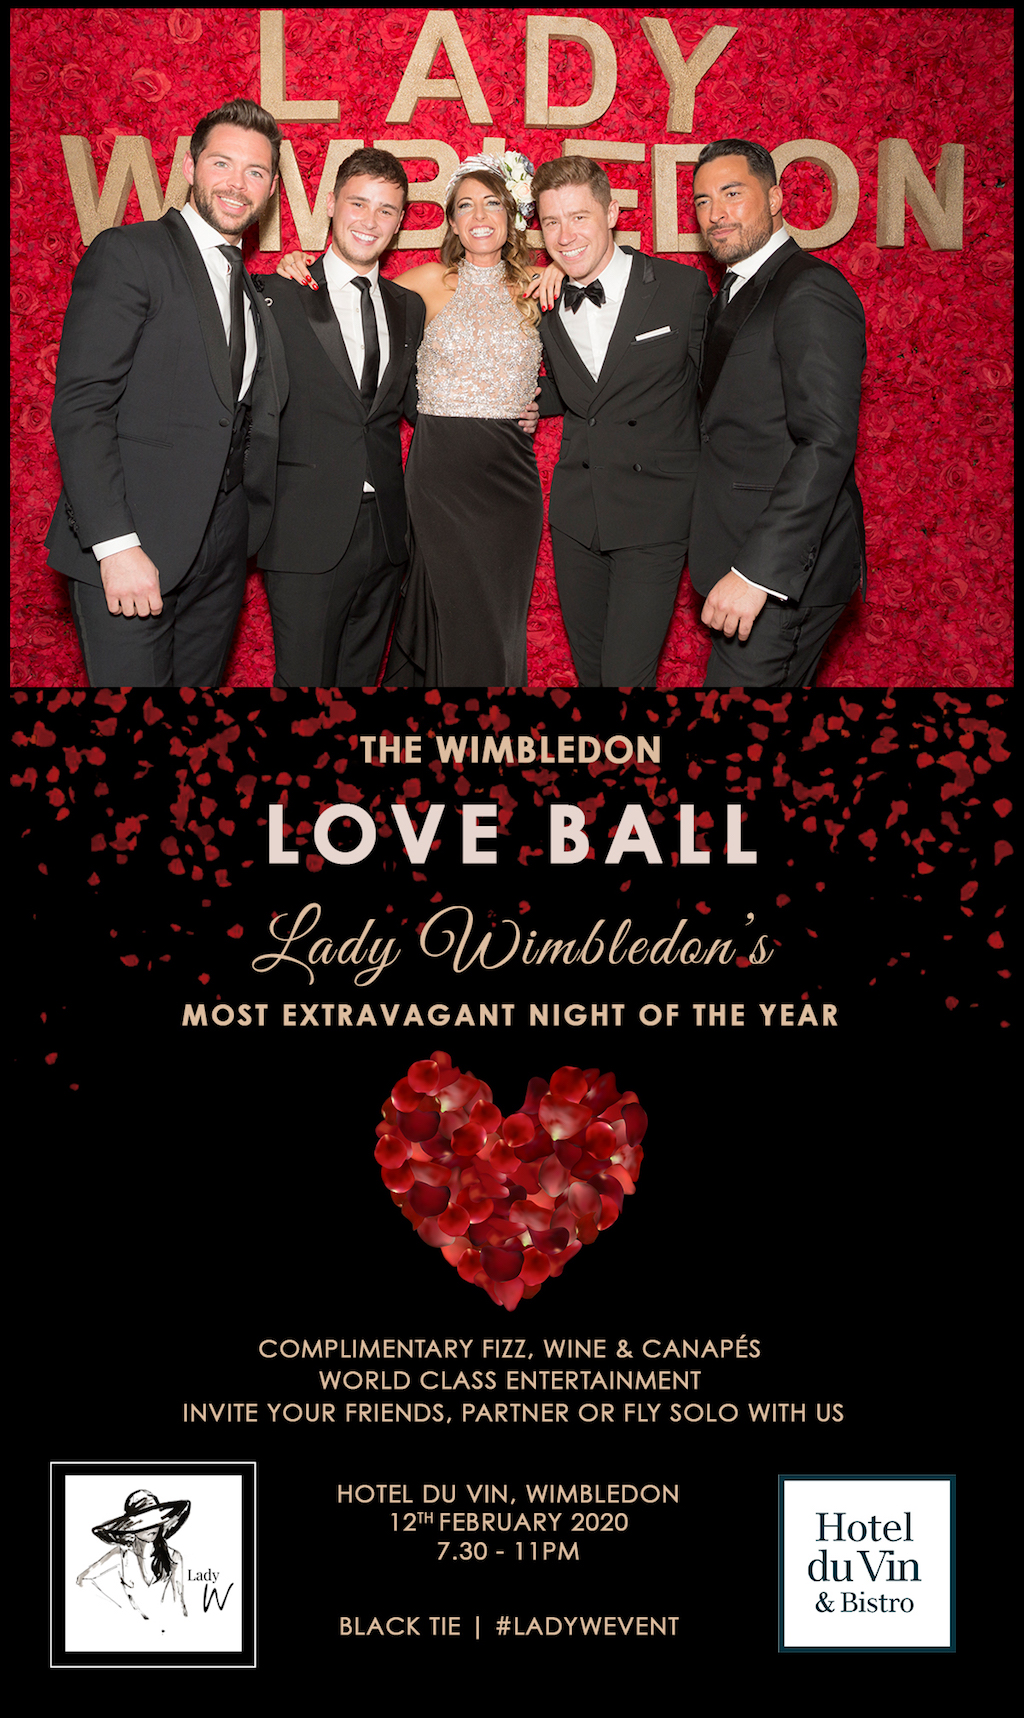 The Wimbledon Love Ball Invitation